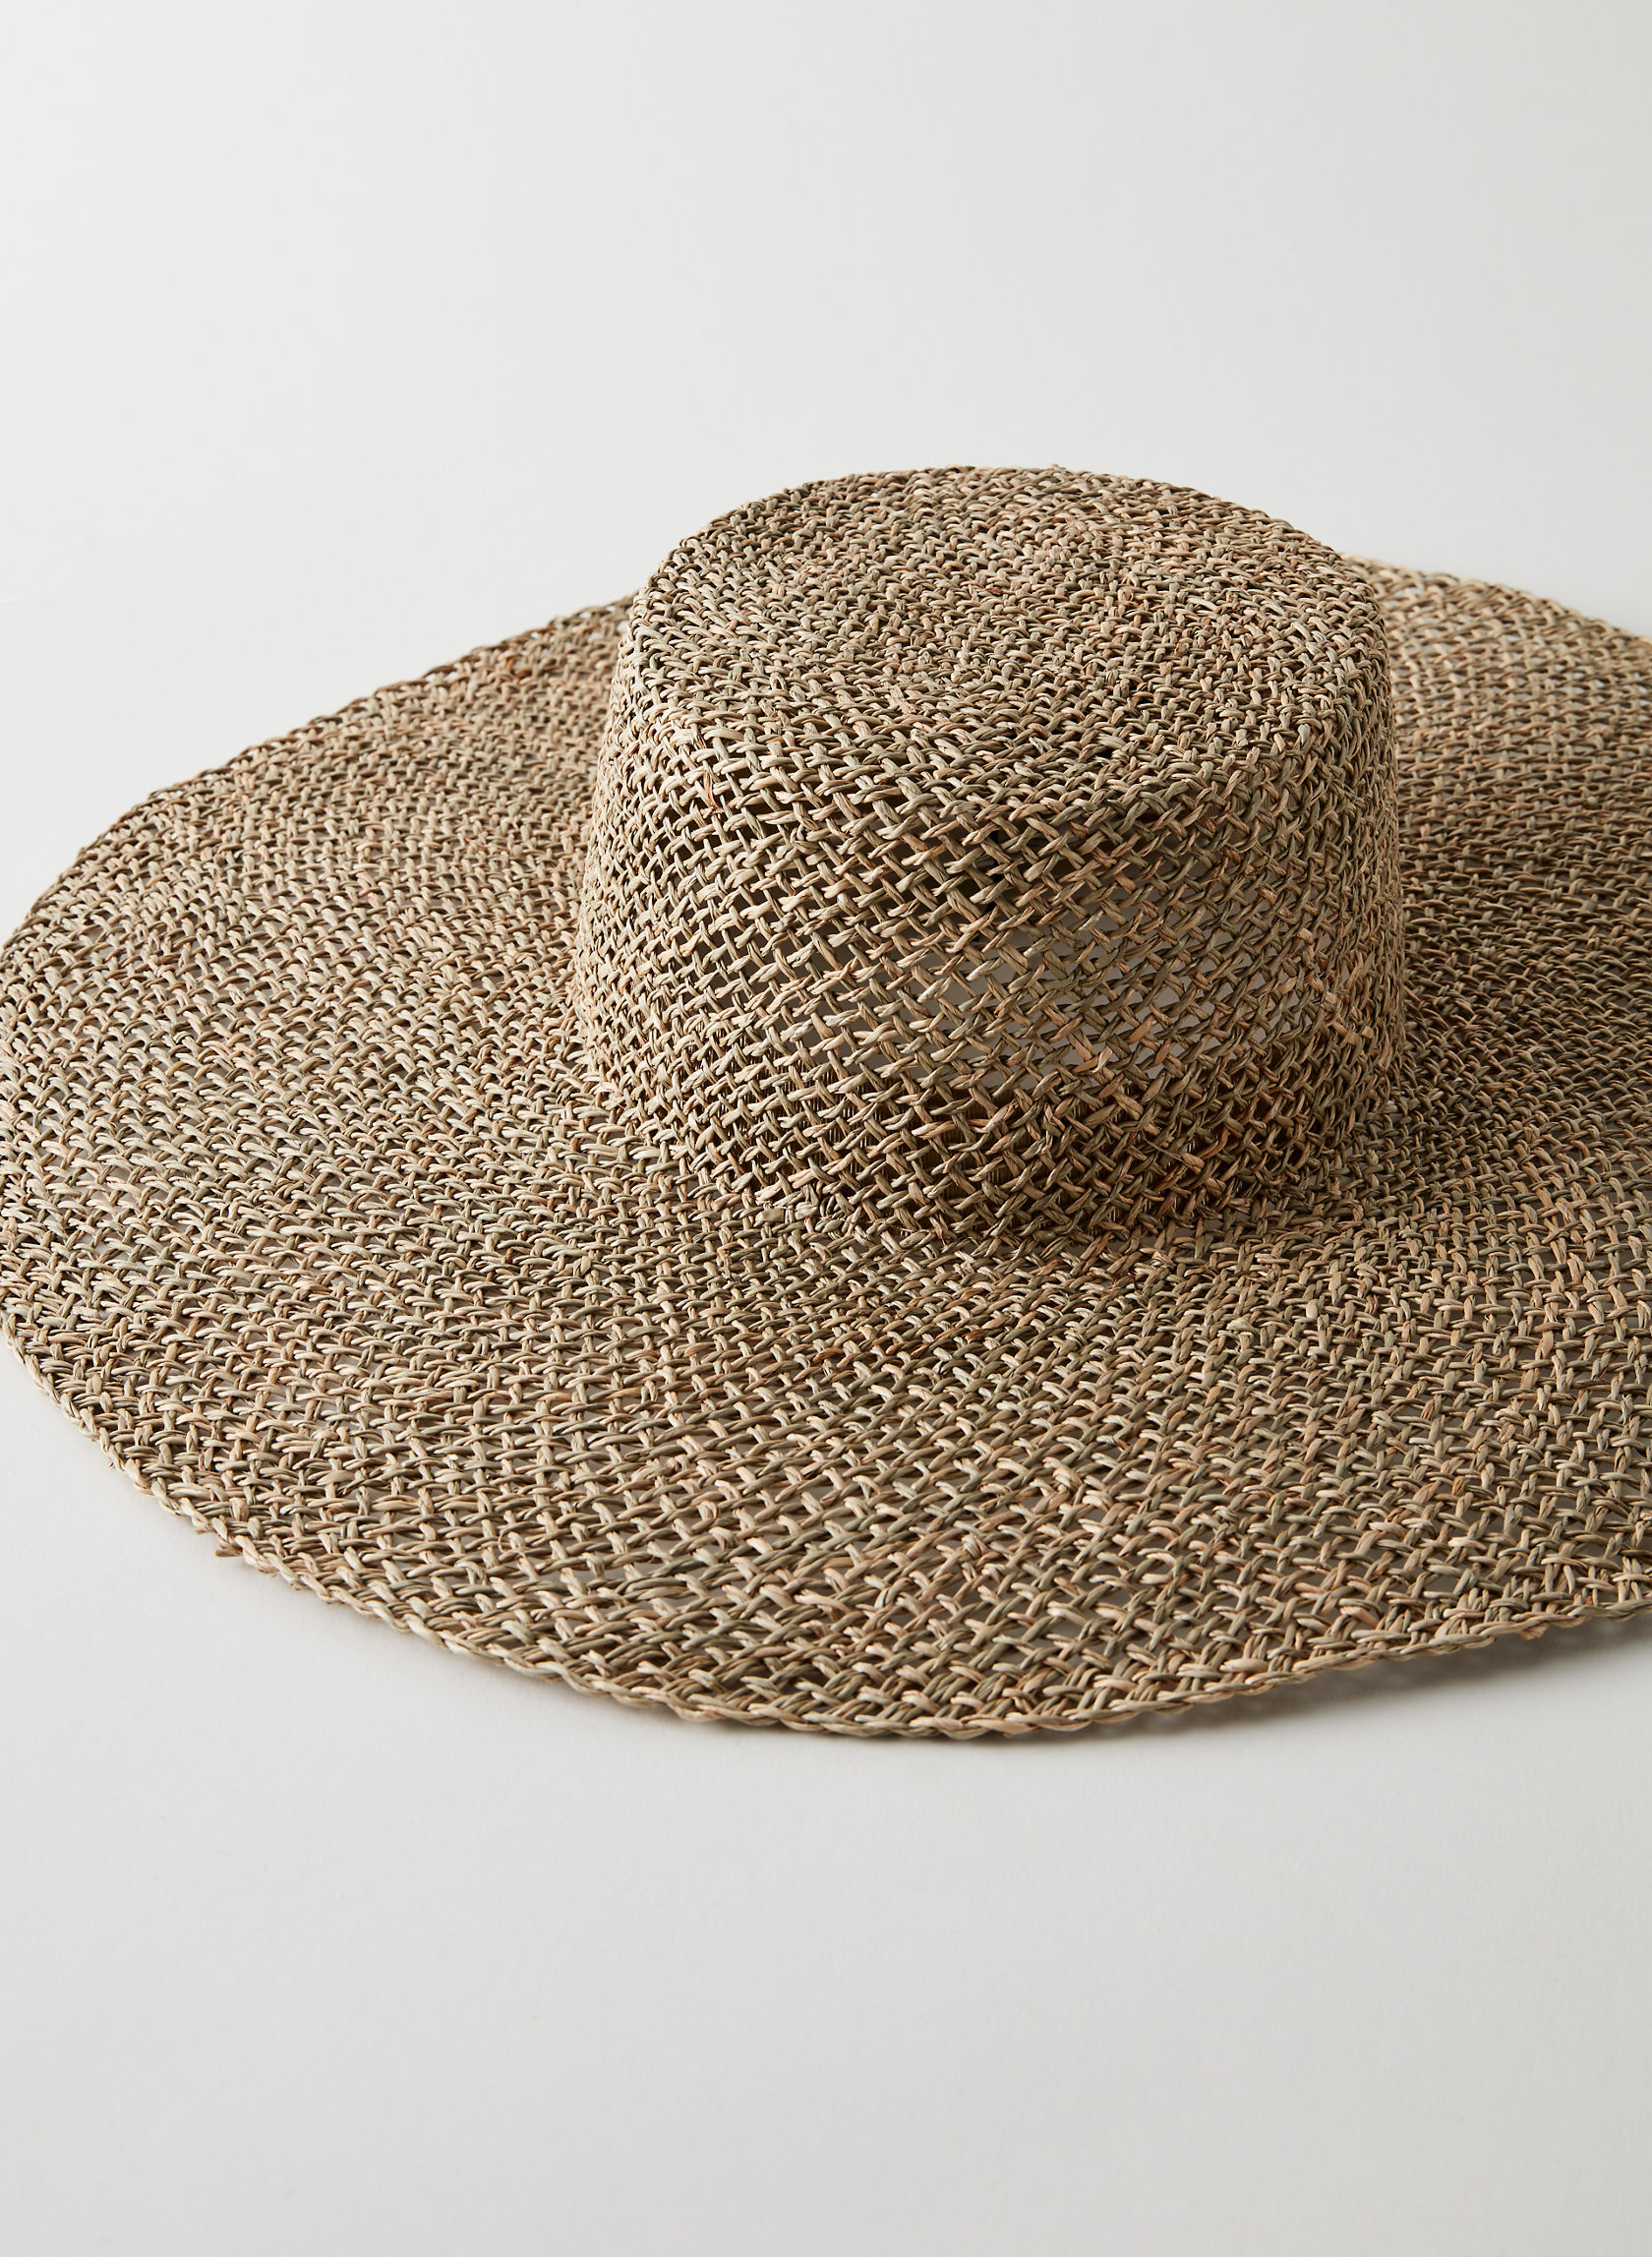 product photo of SEAGRASS BOLERO HAT - straw hat from aritzia